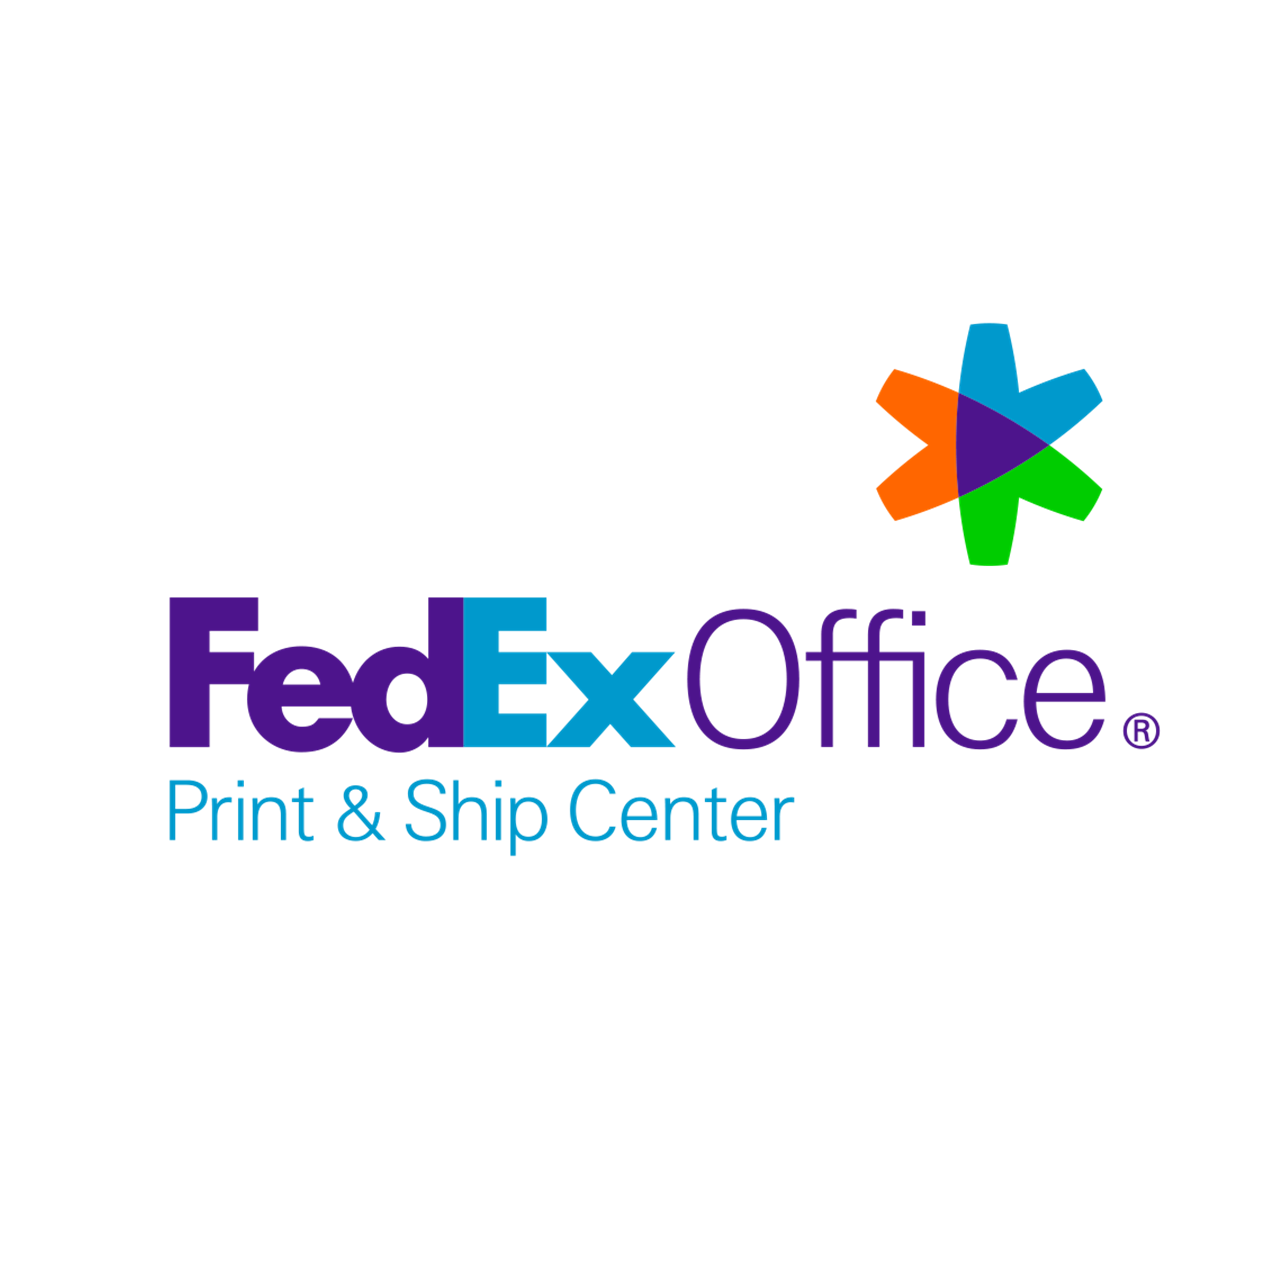 FedEx Office Print & Ship Center - Clackamas, OR 97015 - (503)786-3815 | ShowMeLocal.com